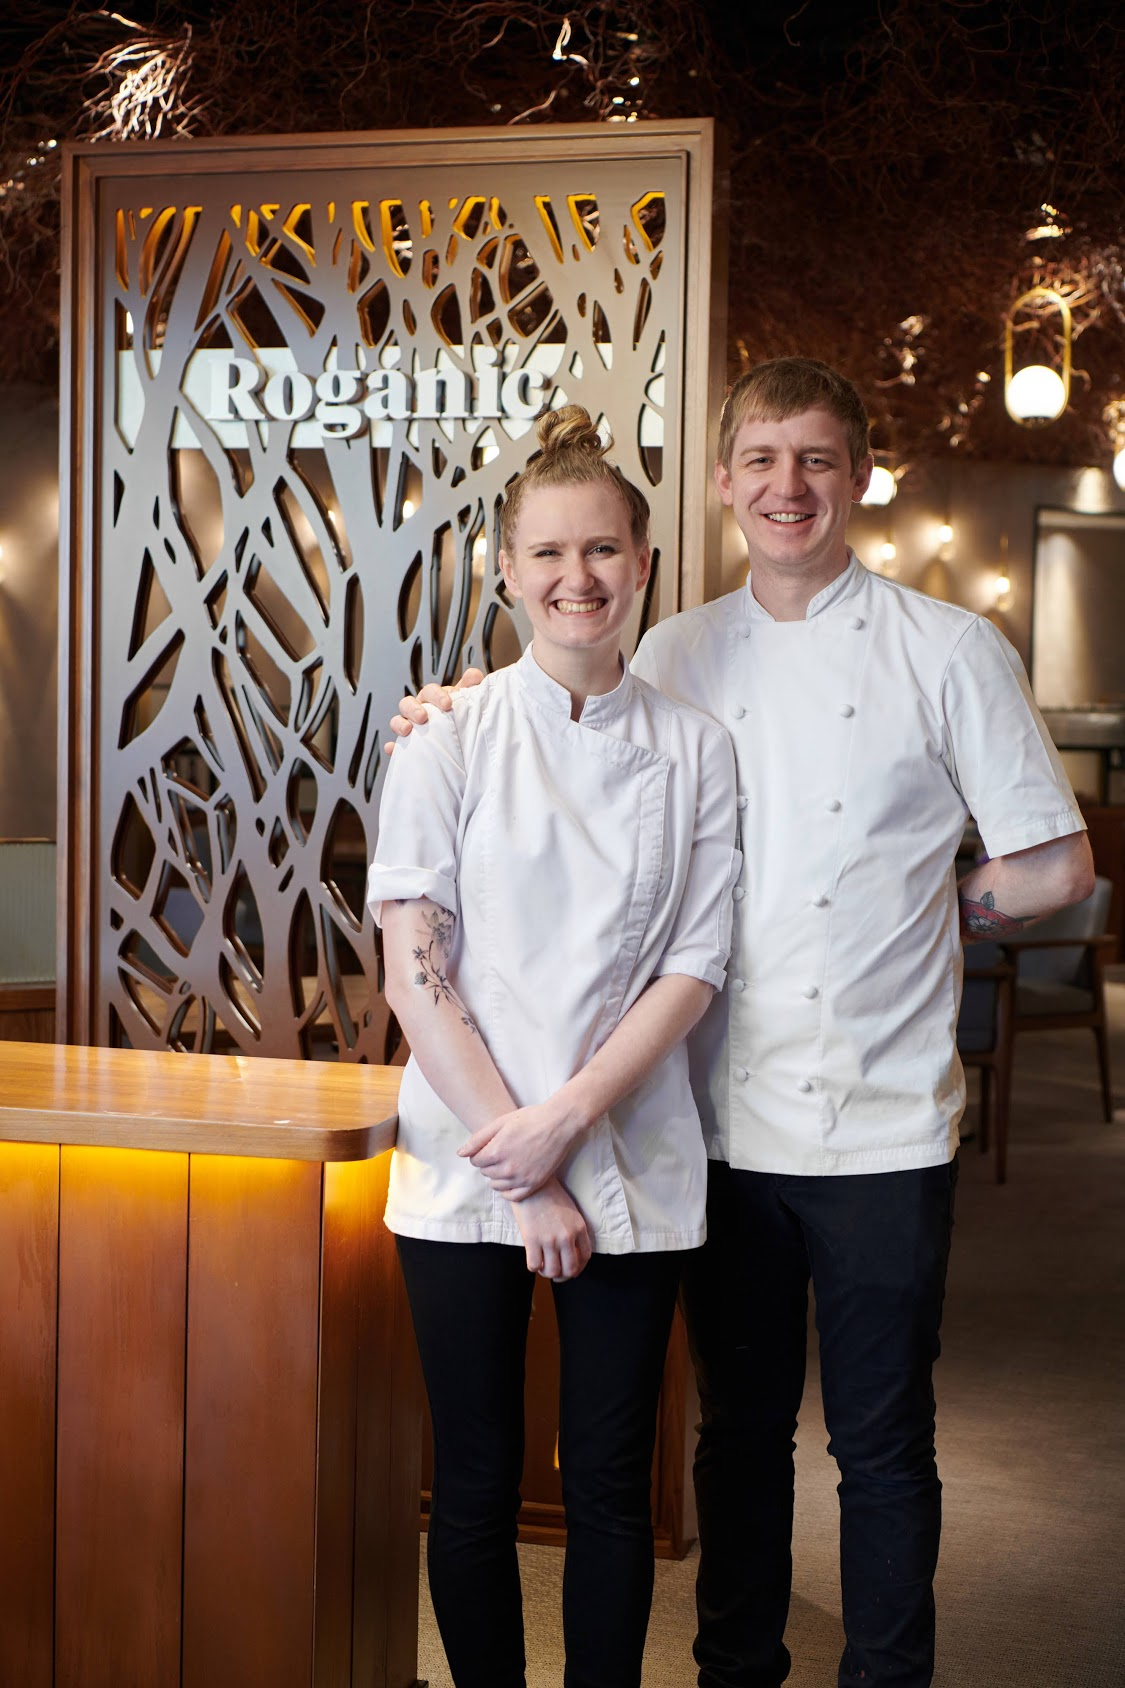 roganic-ash-salmon-Teigen-Jai Morrison-valentine's-day-michelin-guide-power-couple.jpeg